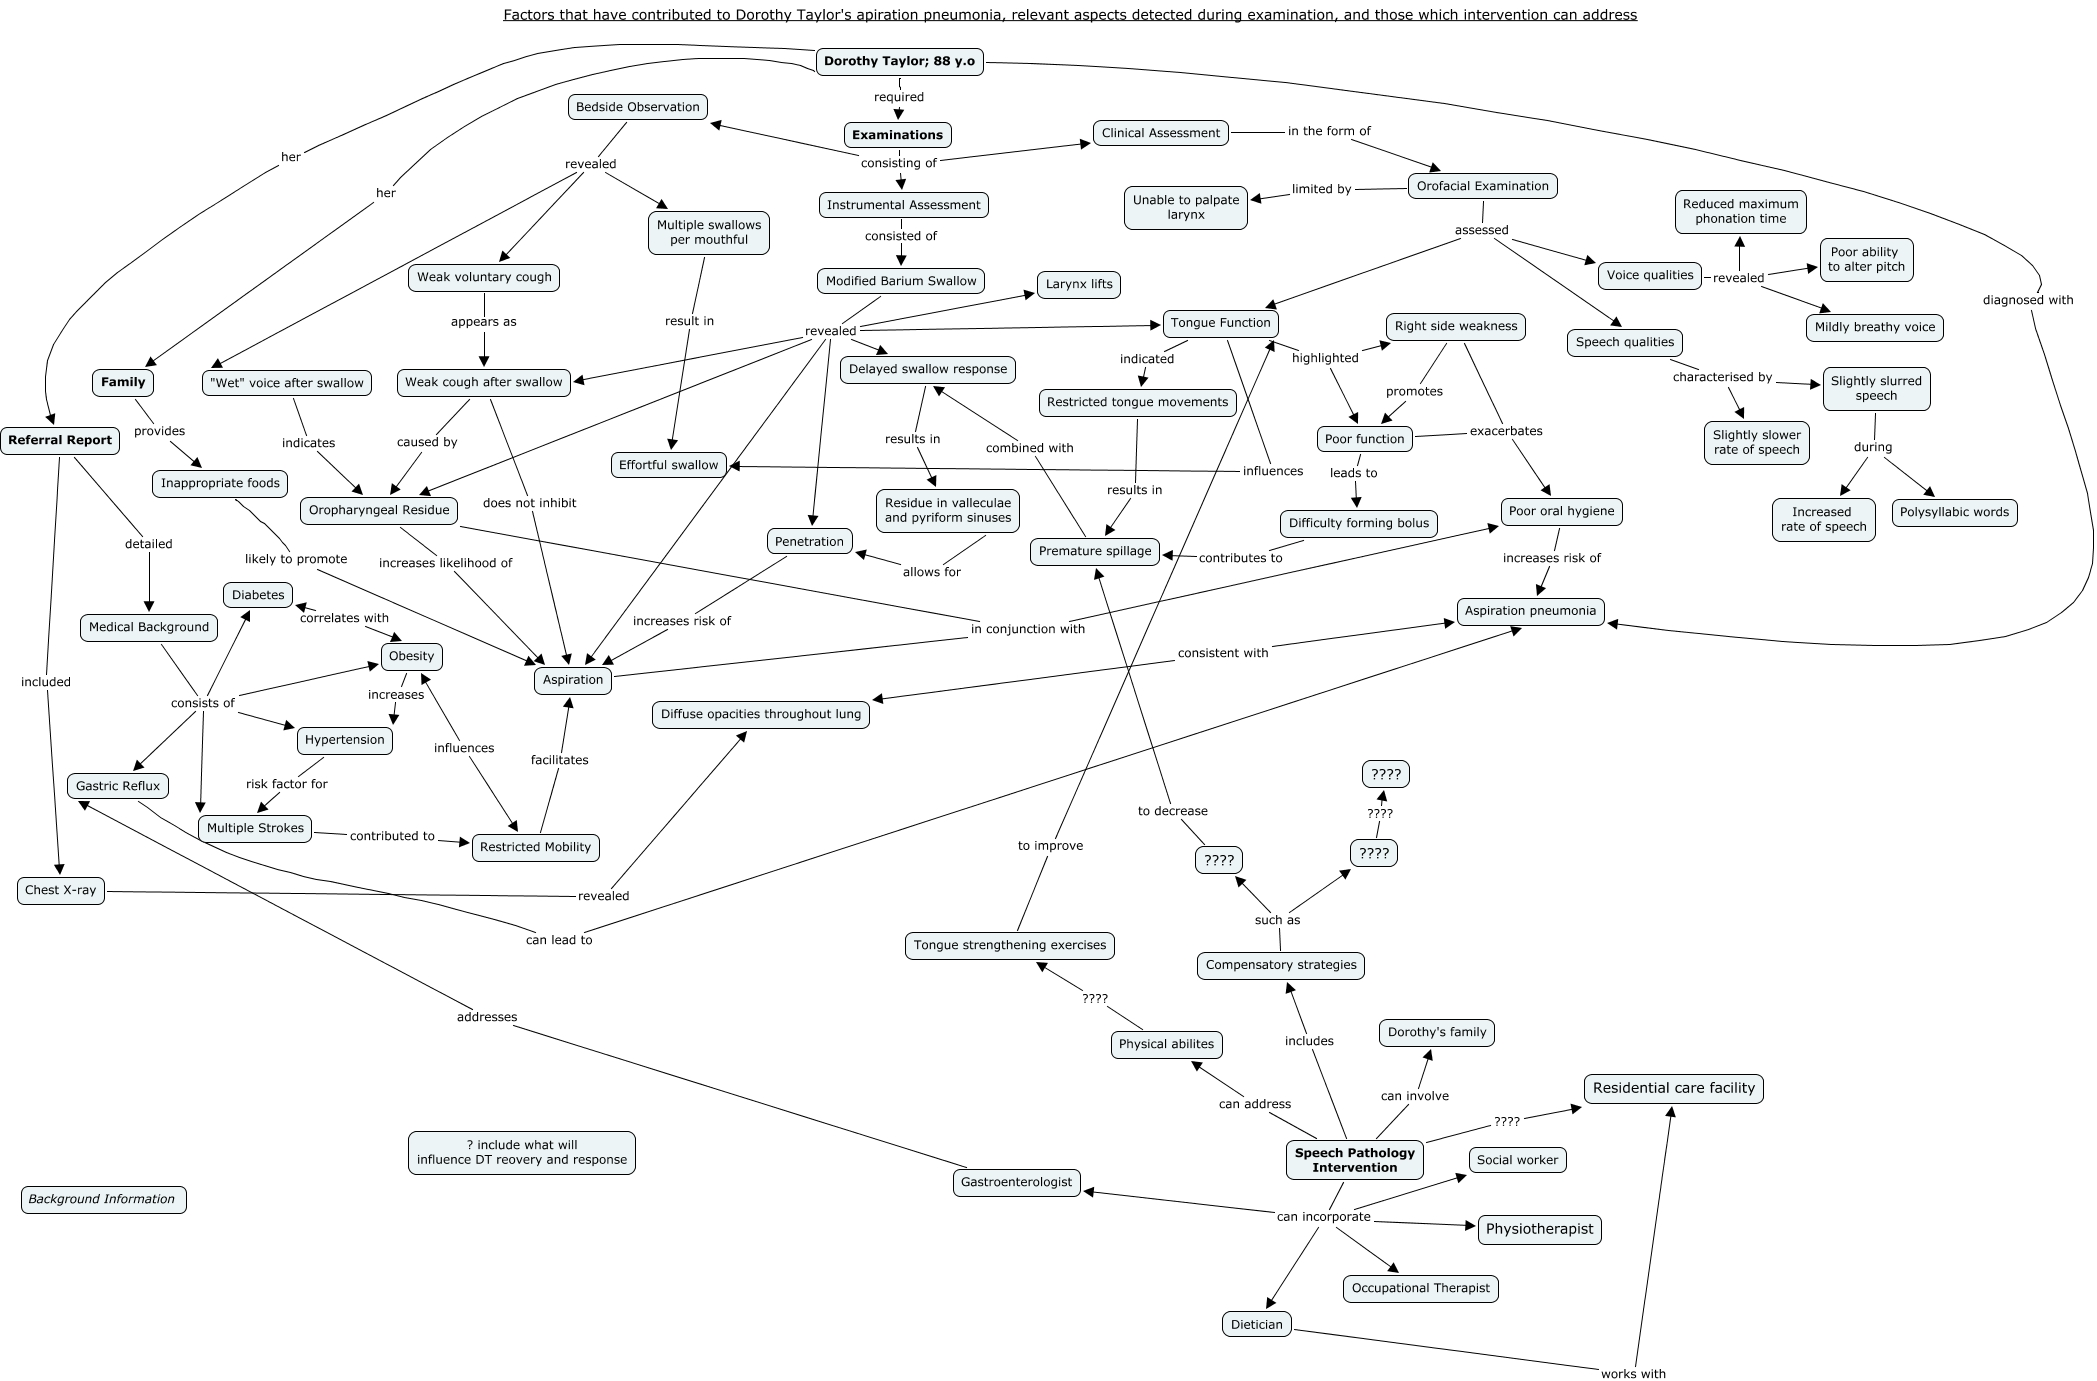 DT Concept Map Factors That Have Contributed To Dorothy Taylors - Us pathology maps